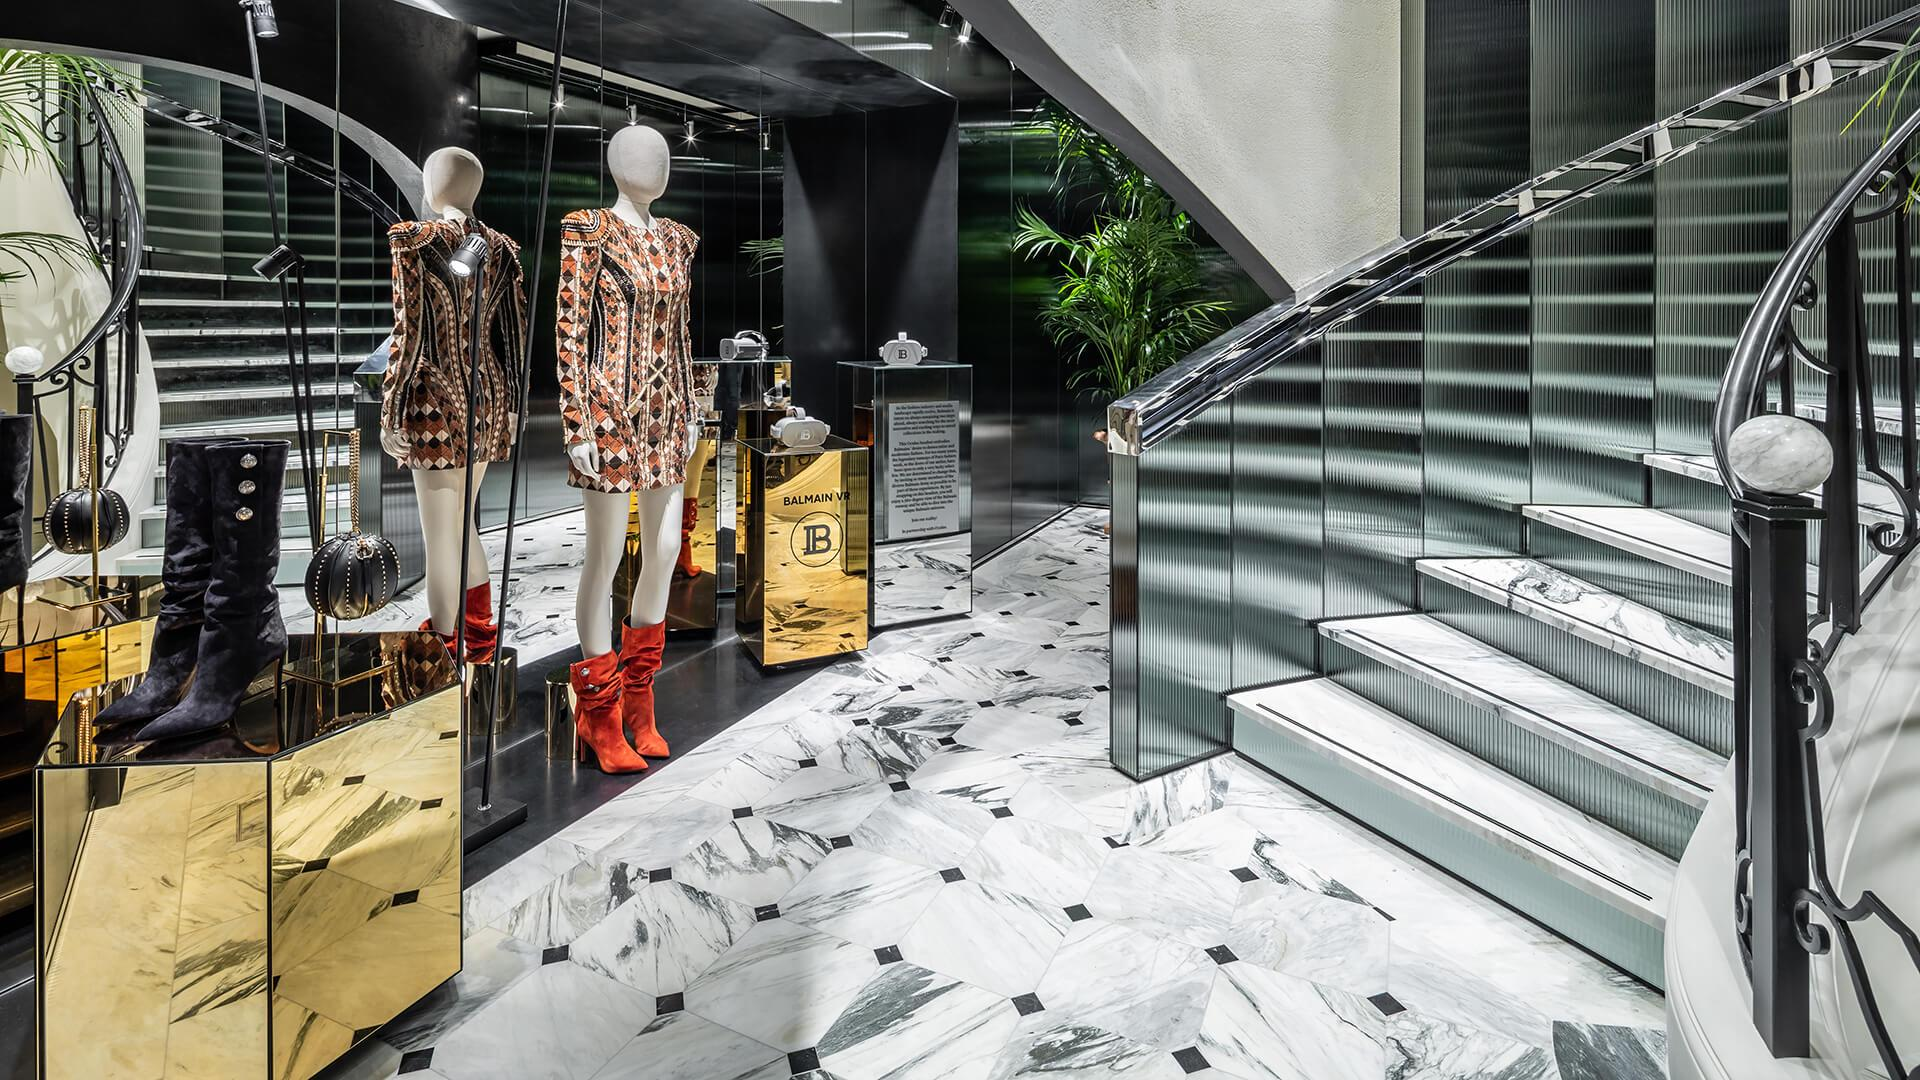 It's not in Versailles, but it might as well be: Balmain's new Paris flagship has its own hall of mirrors